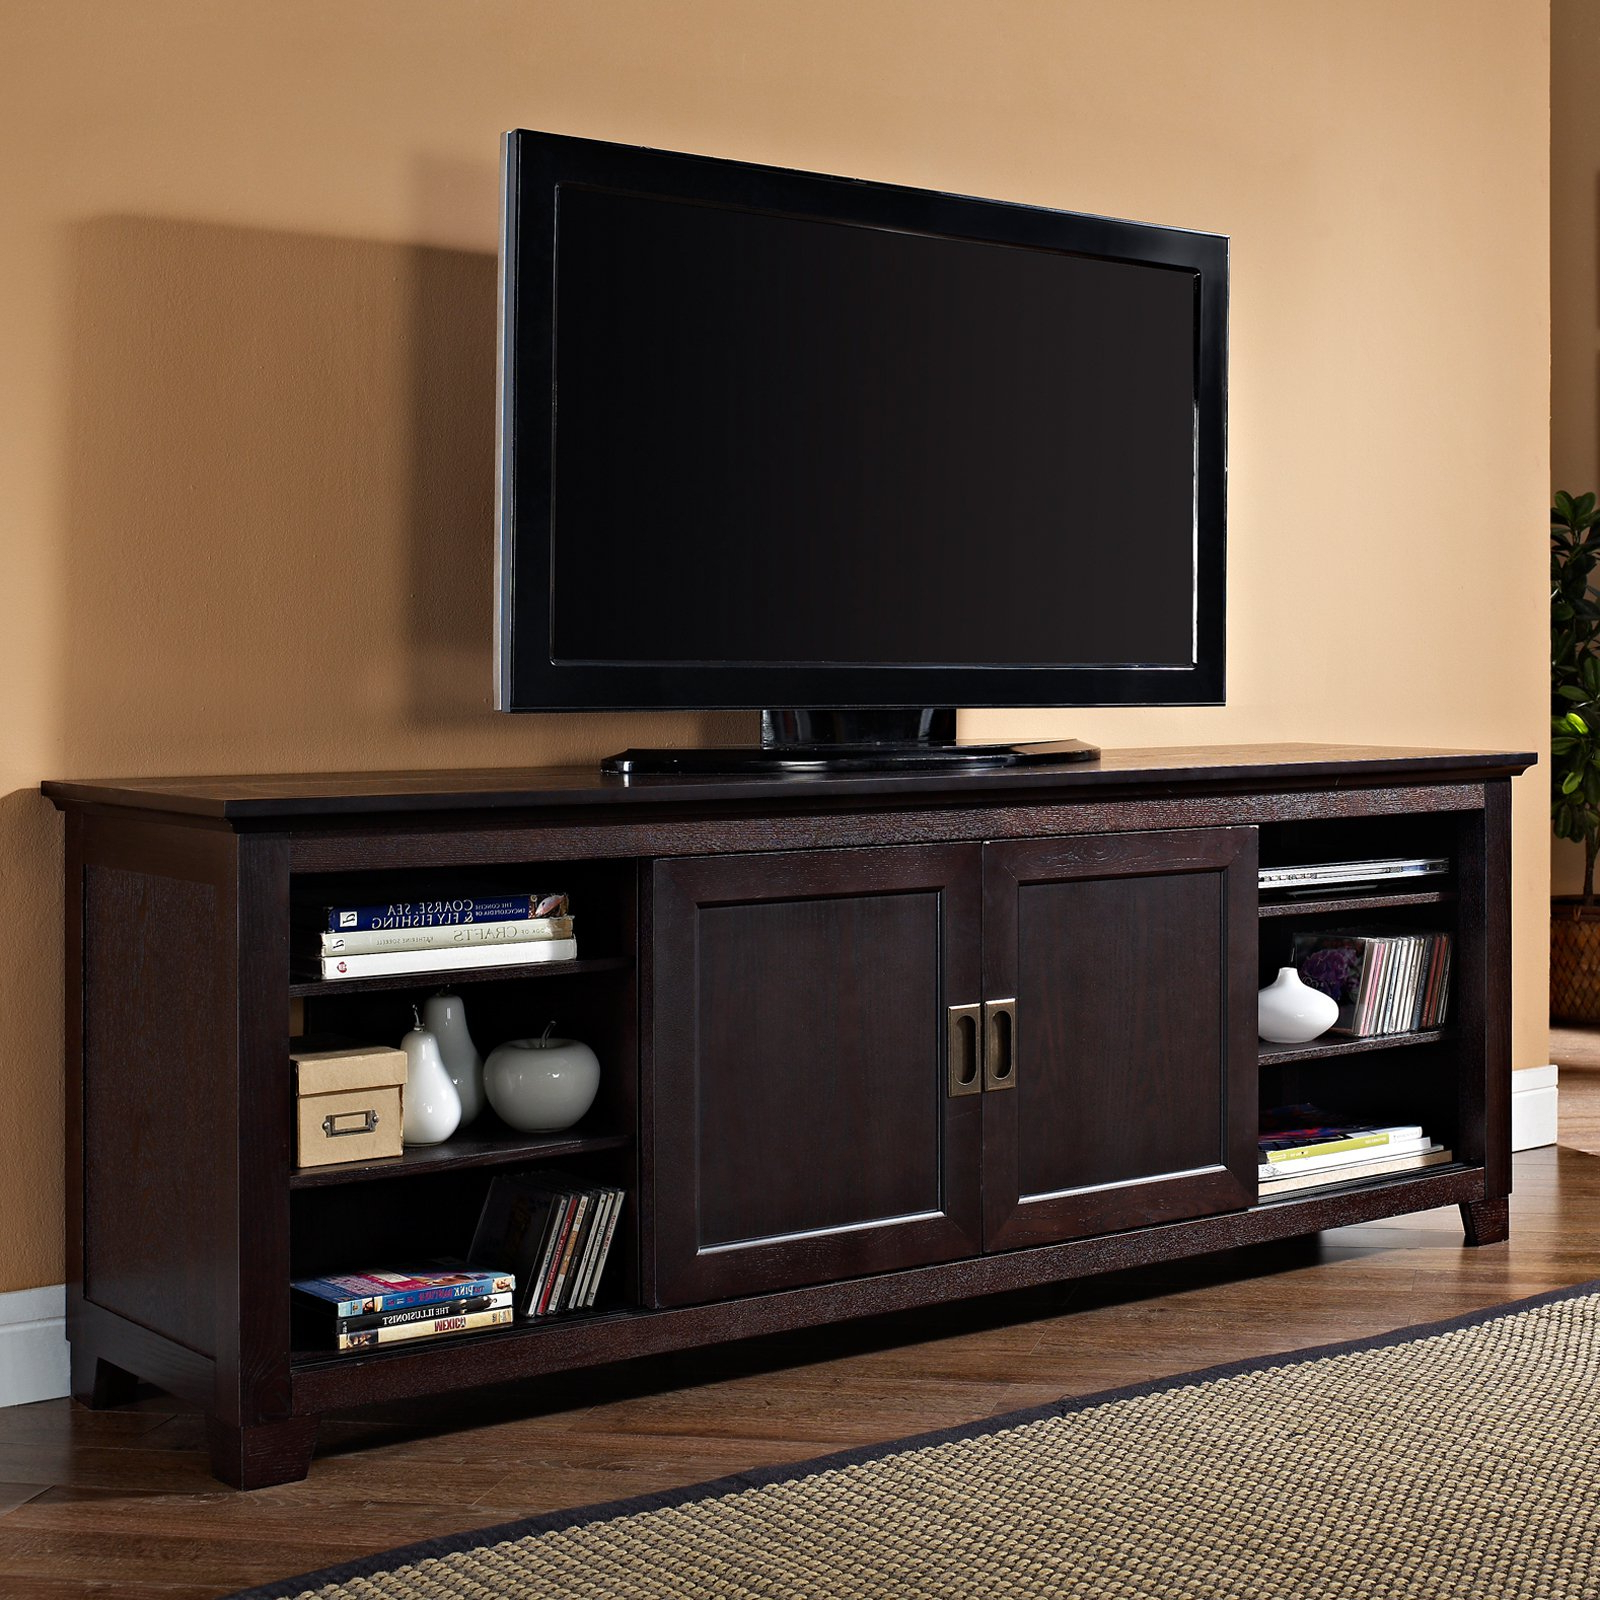 Expresso Tv Stands Intended For Recent Expresso Tv Stands Effective 1600×1600 Attachment (View 6 of 20)